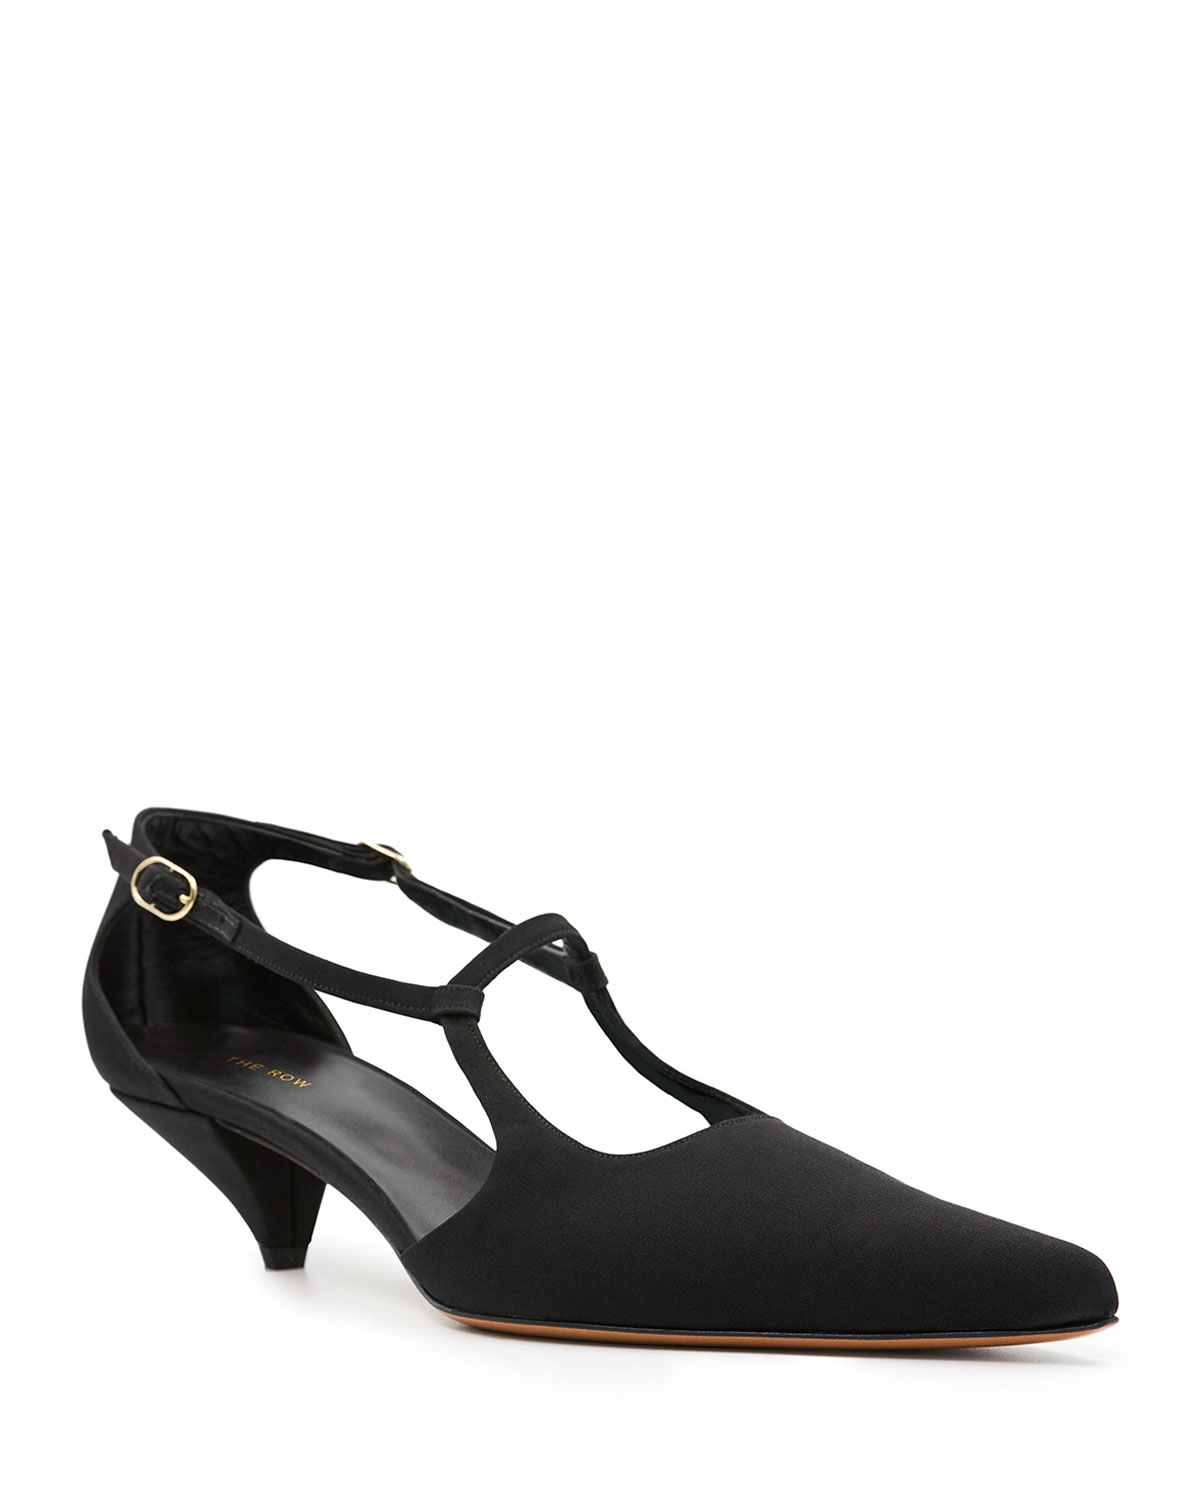 1a244757515 THE ROW Bourgoise Salome Satin Pumps